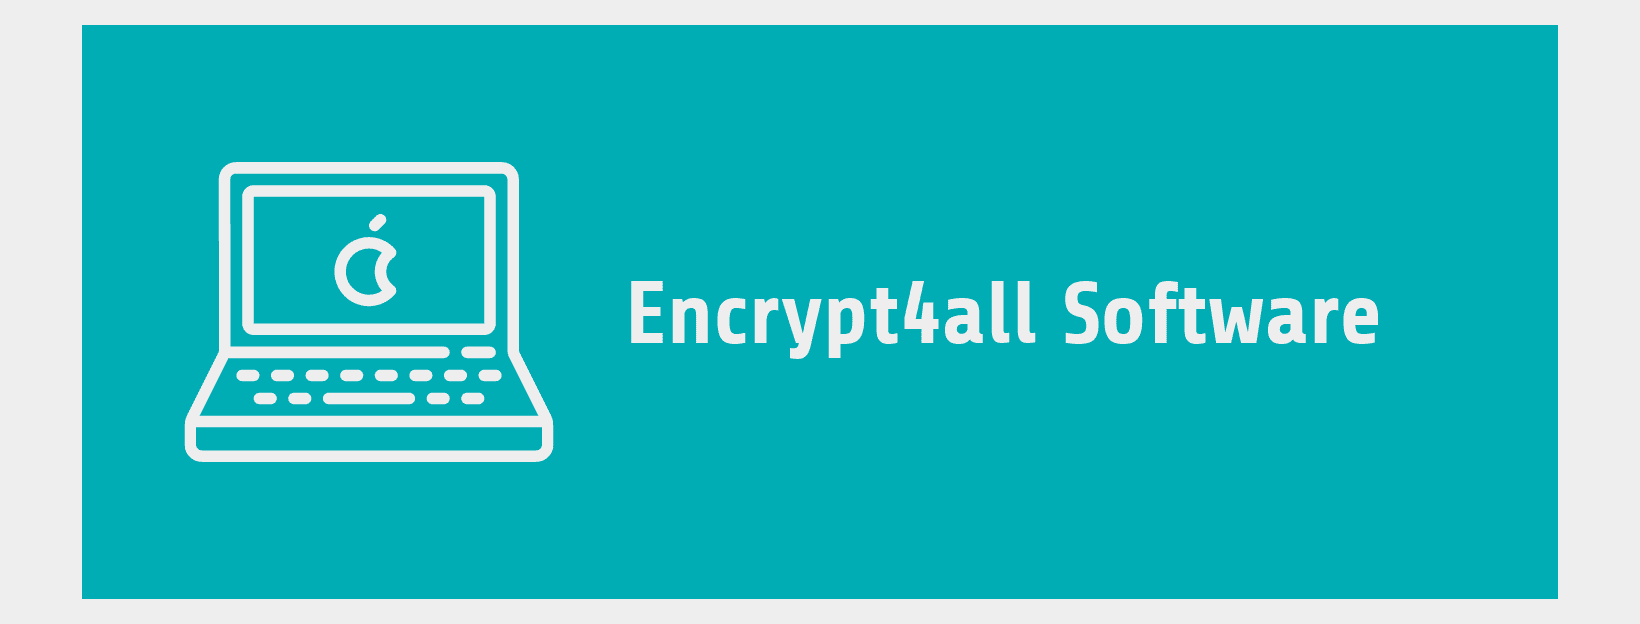 About Encrypt4all Software Homepage